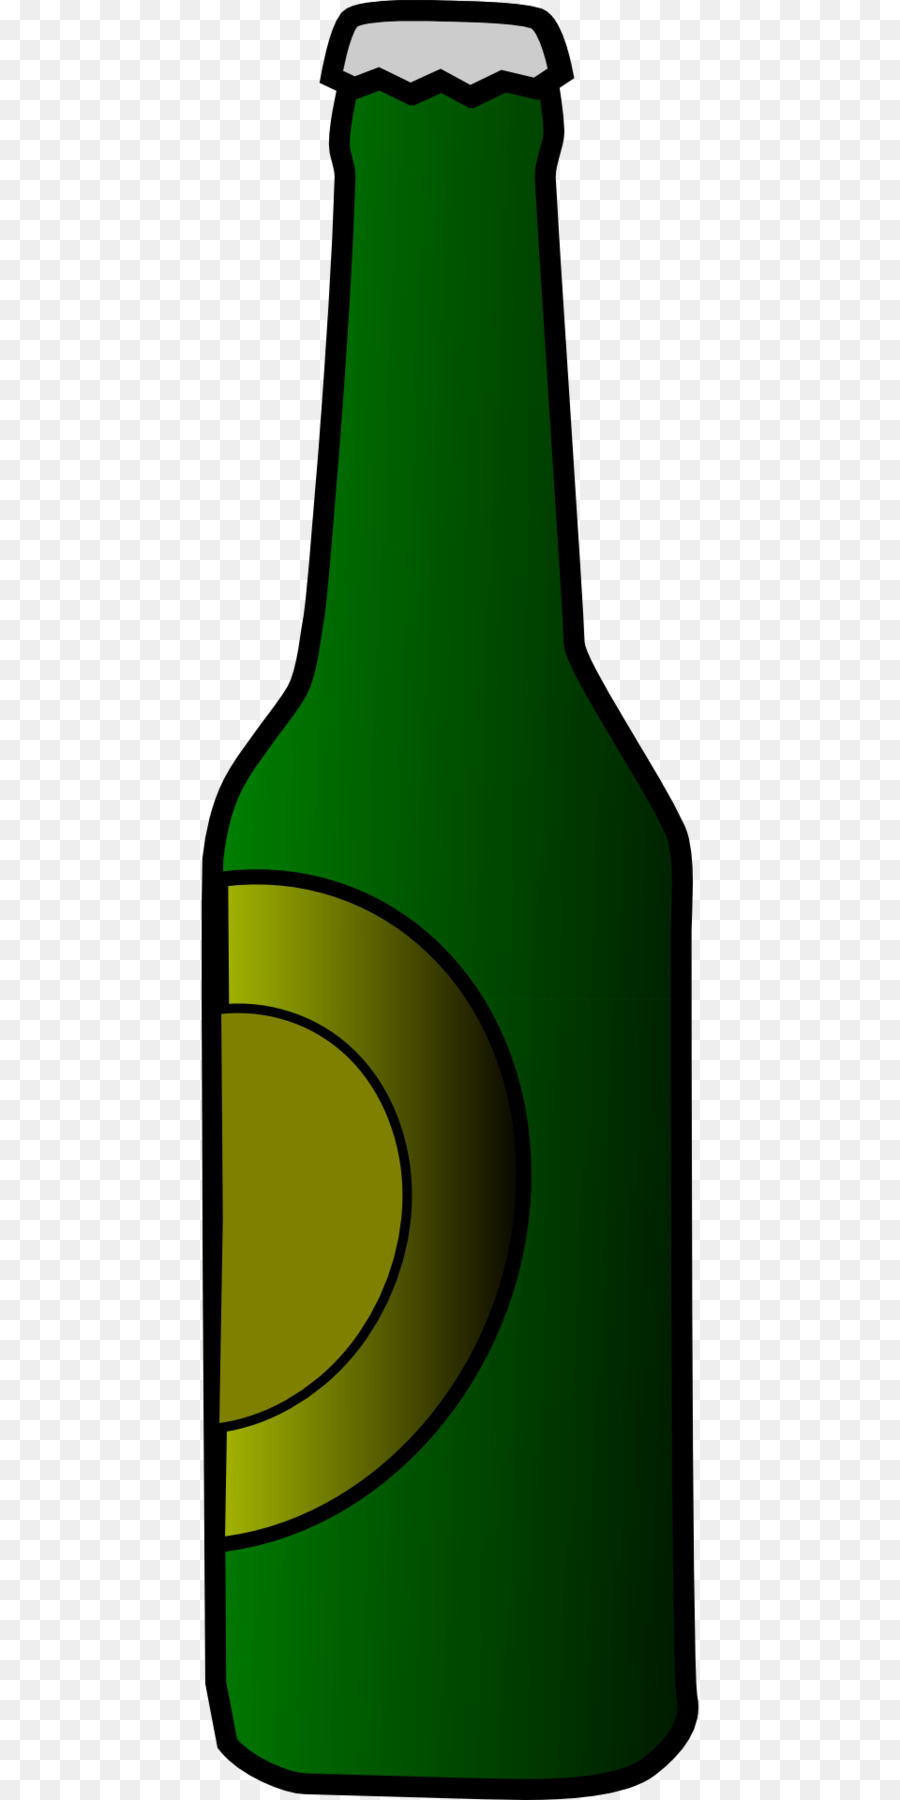 beer bottle clip art jiangnan is drunk png download 960 1920 rh kisspng com clipart bottle of water bottle clipart vector